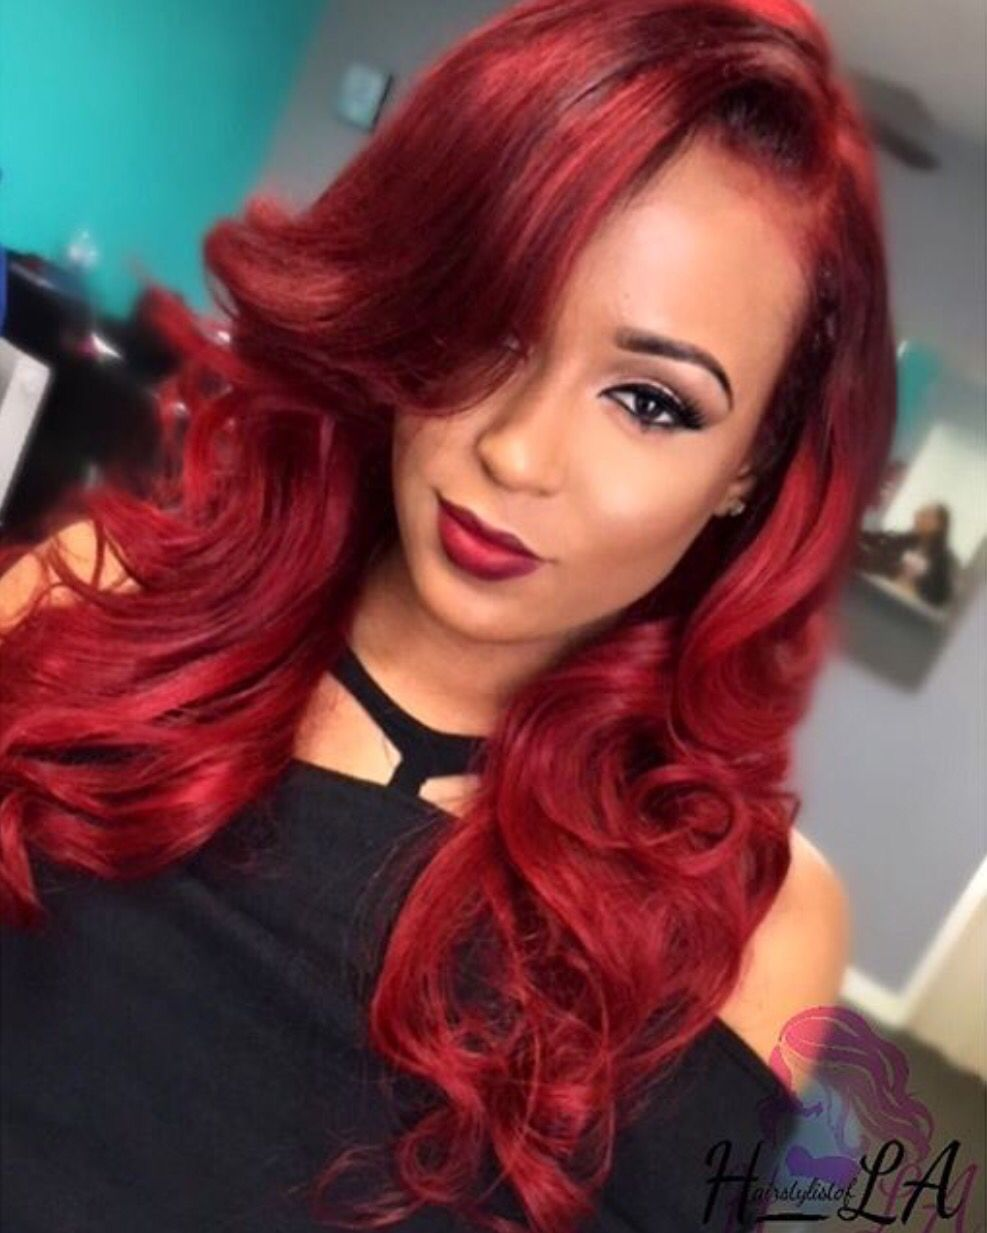 red hair | cool red hair extensions | pinterest | red hair, hair